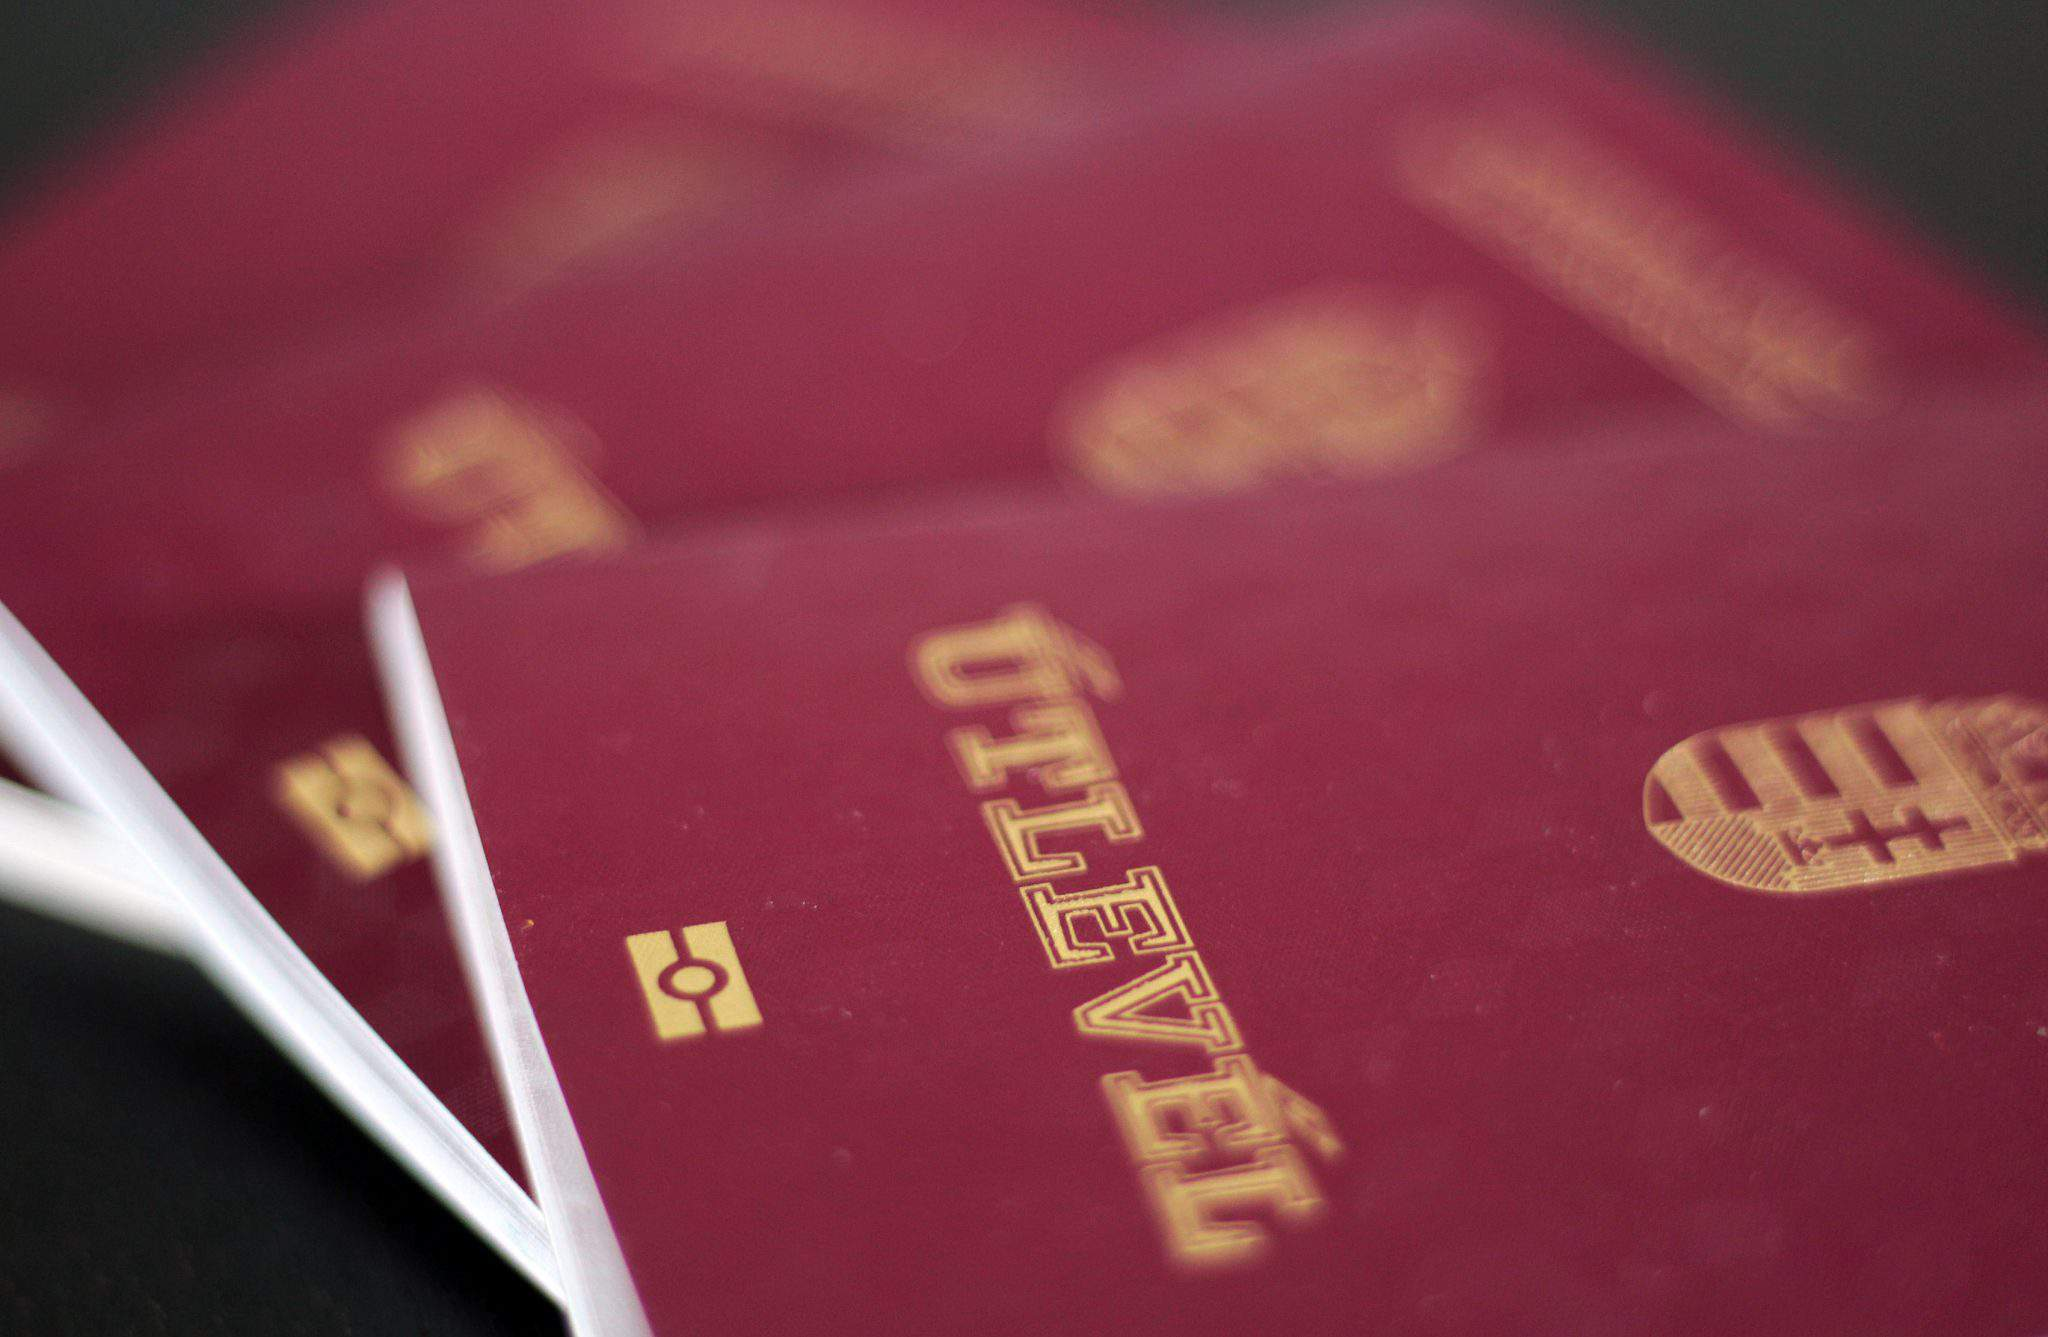 passport-citizenship-Hungary